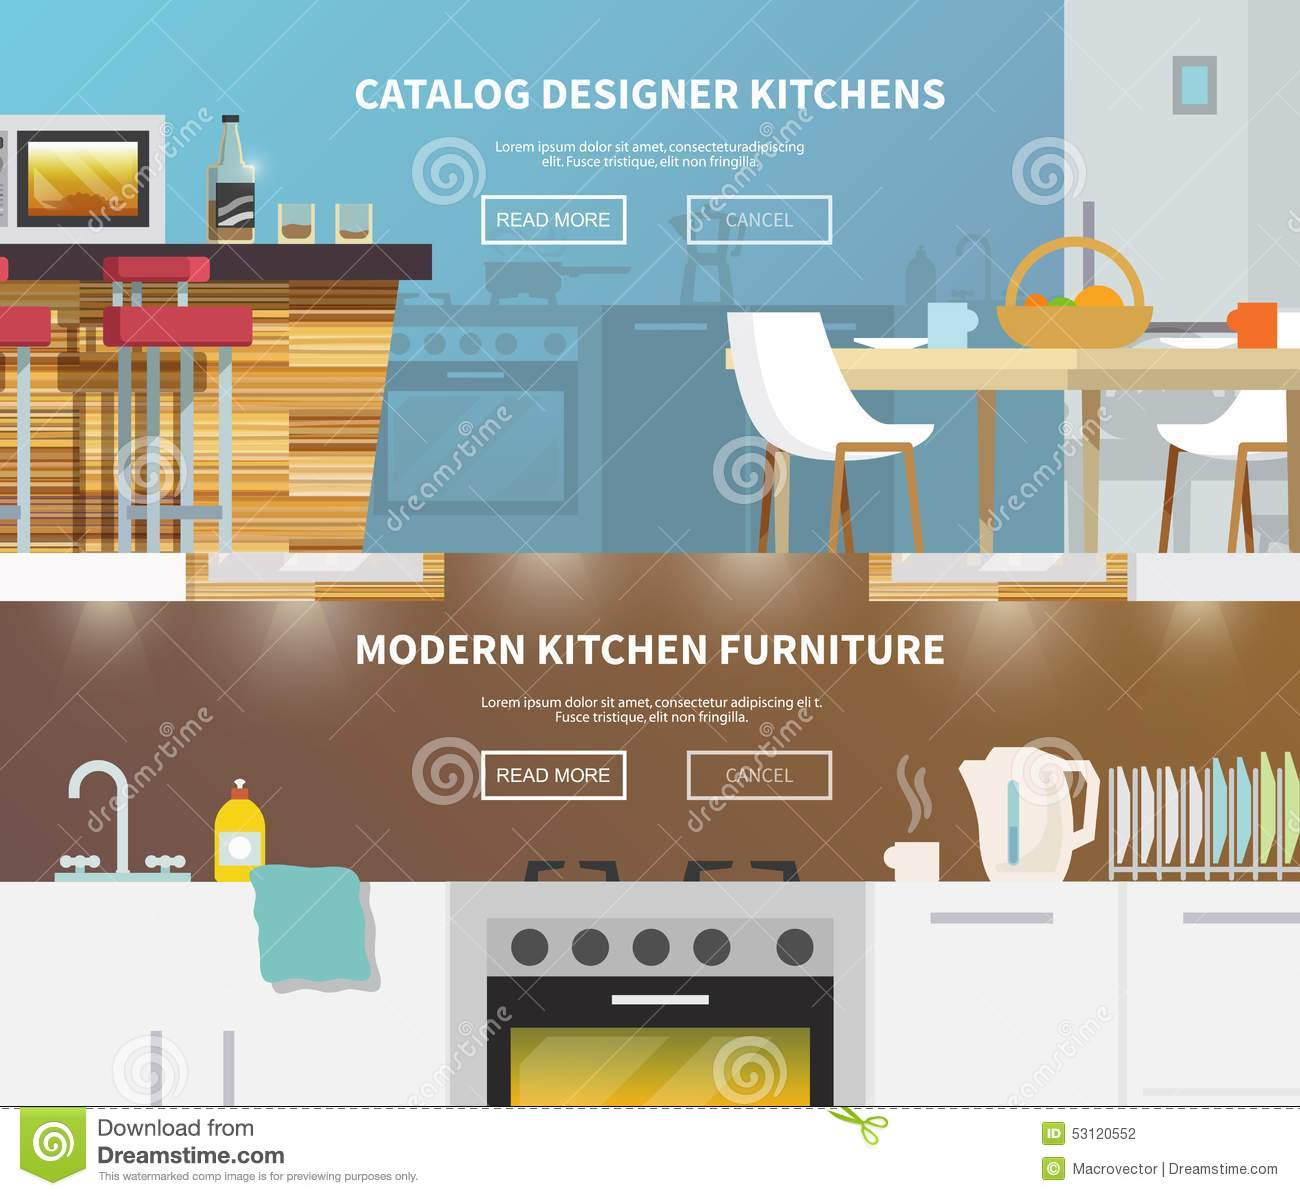 Furniture Design Elements kitchen furniture banner stock vector - image: 53120552